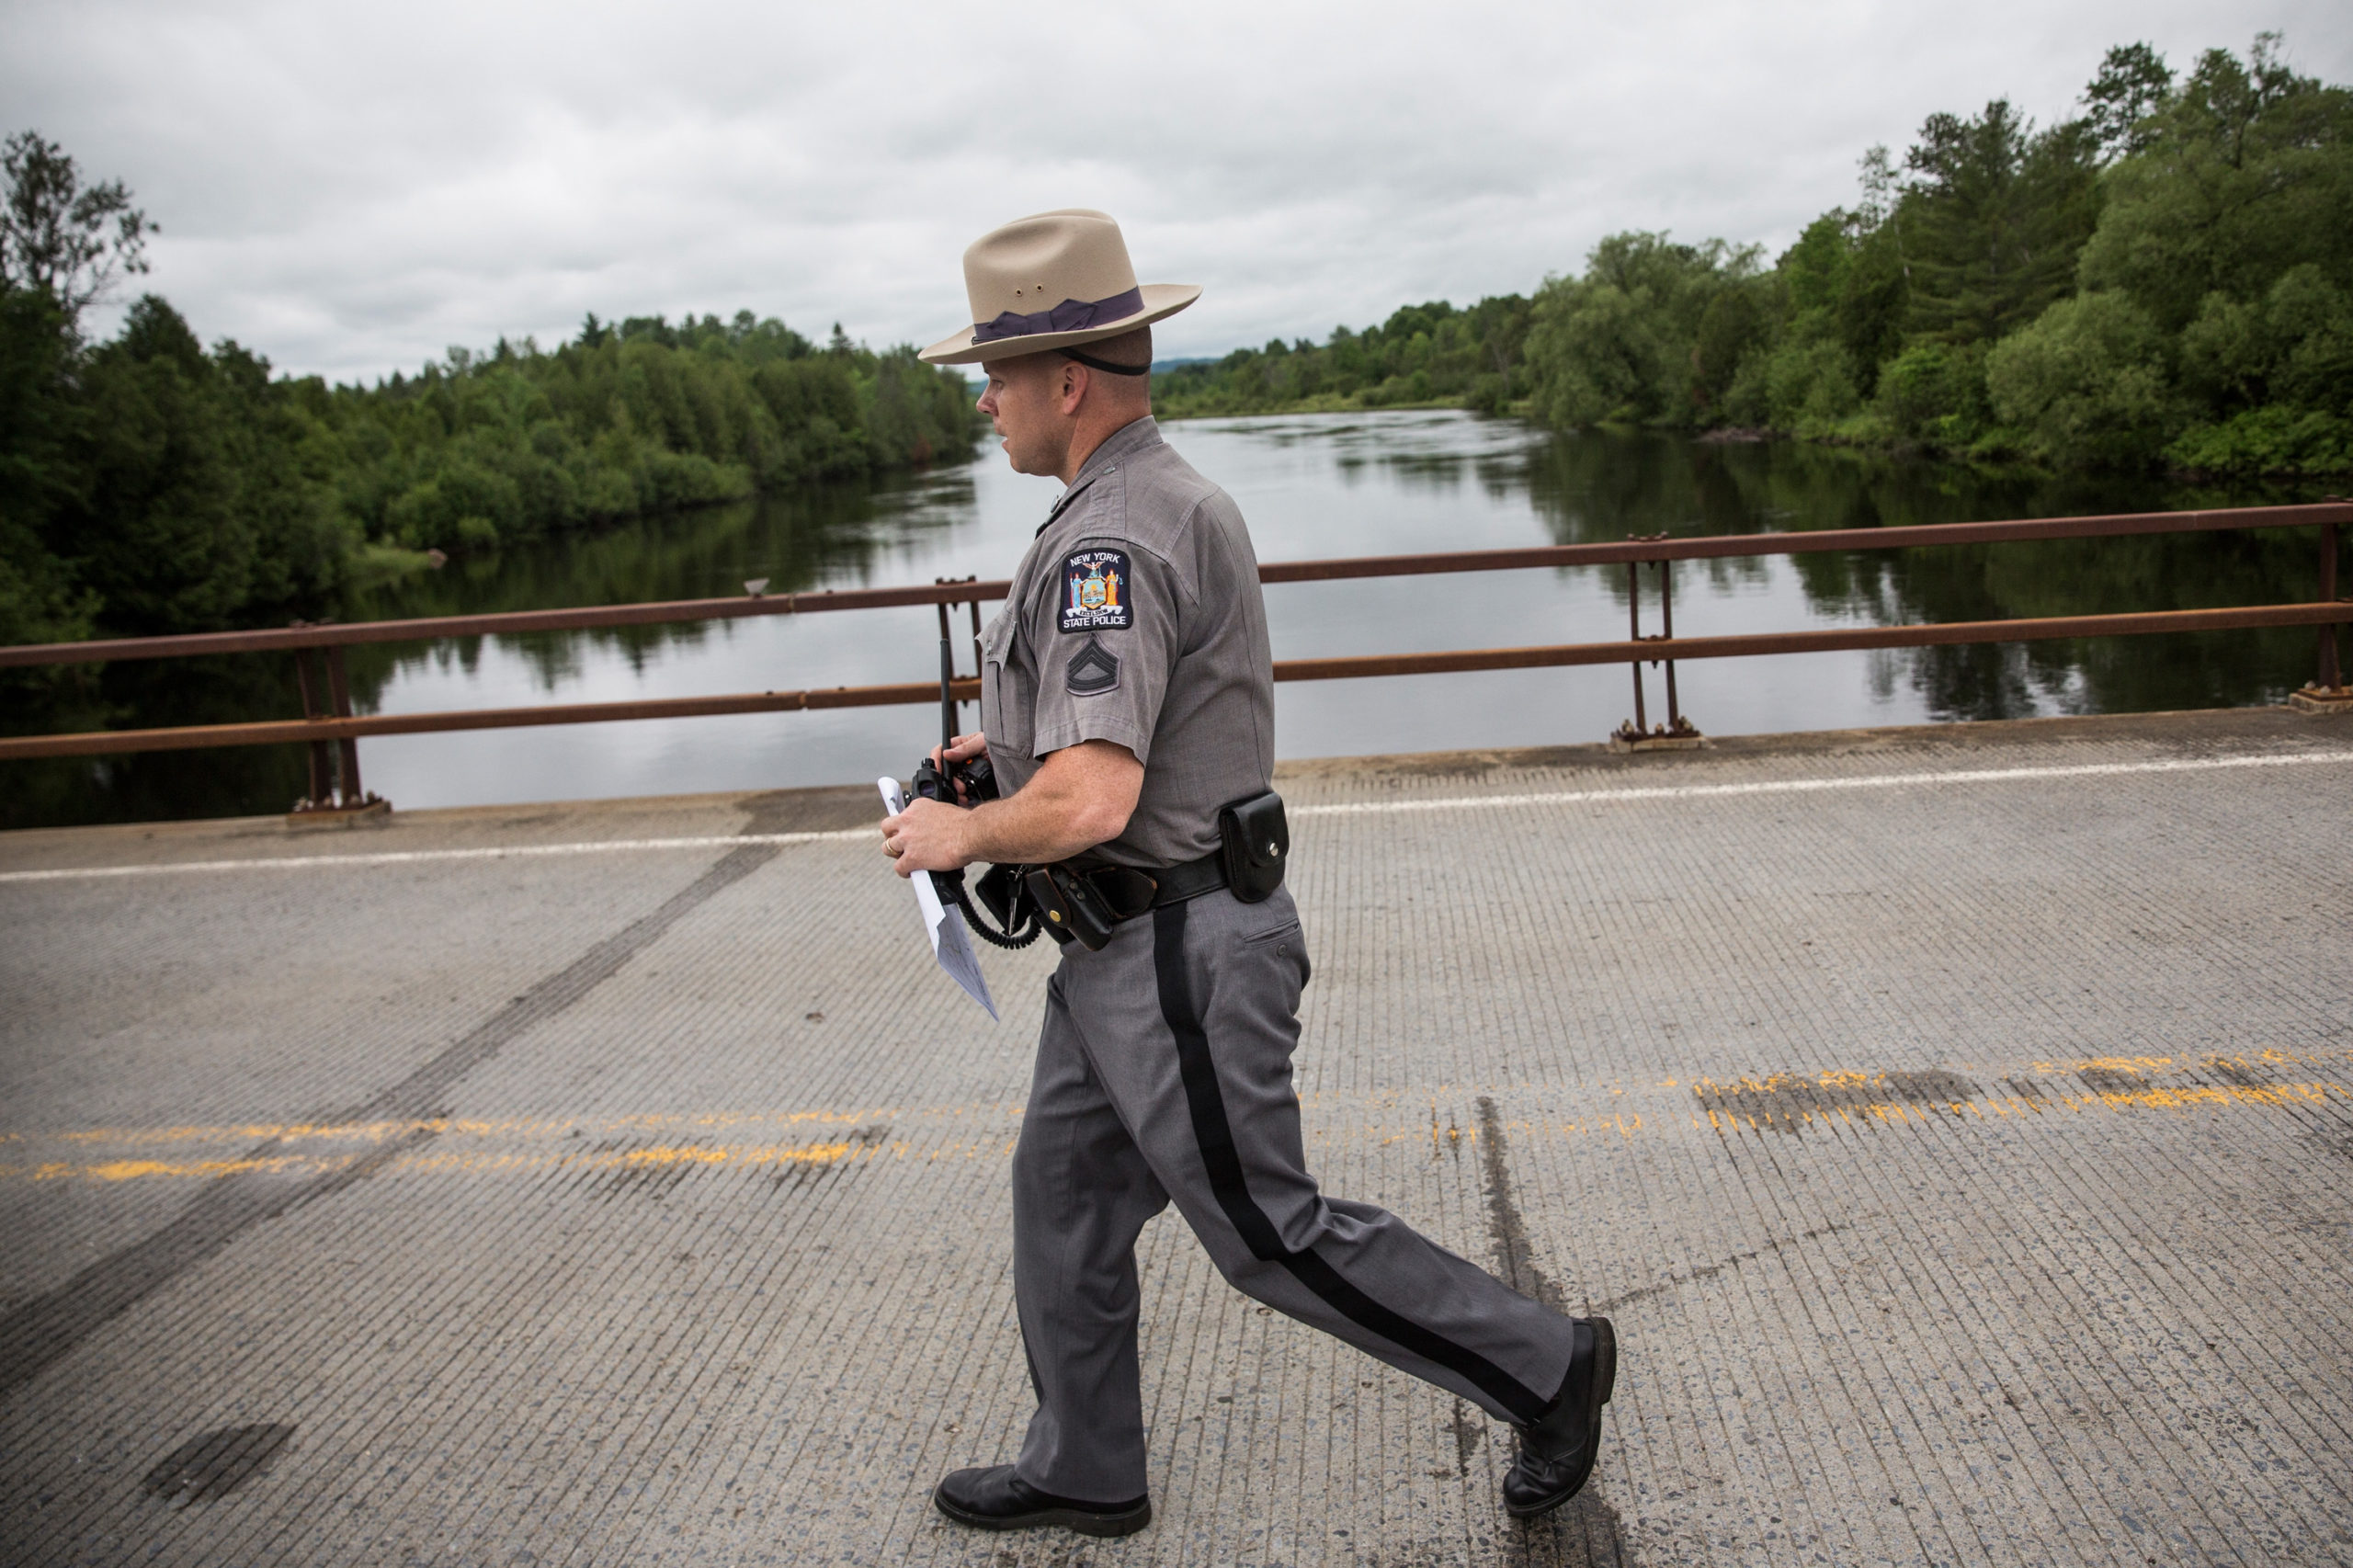 DANNEMORA, NY - JUNE 15: A New York state trooper walks across a bridge while searching for two escaped convicts on June 15, 2015 outside Dannemora, New York. The two convicted murderers escaped from Clinton Correctional Facility during the early morning hours of June 6; officials have been conducting a manhunt for the two since. (Photo by Andrew Burton/Getty Images)